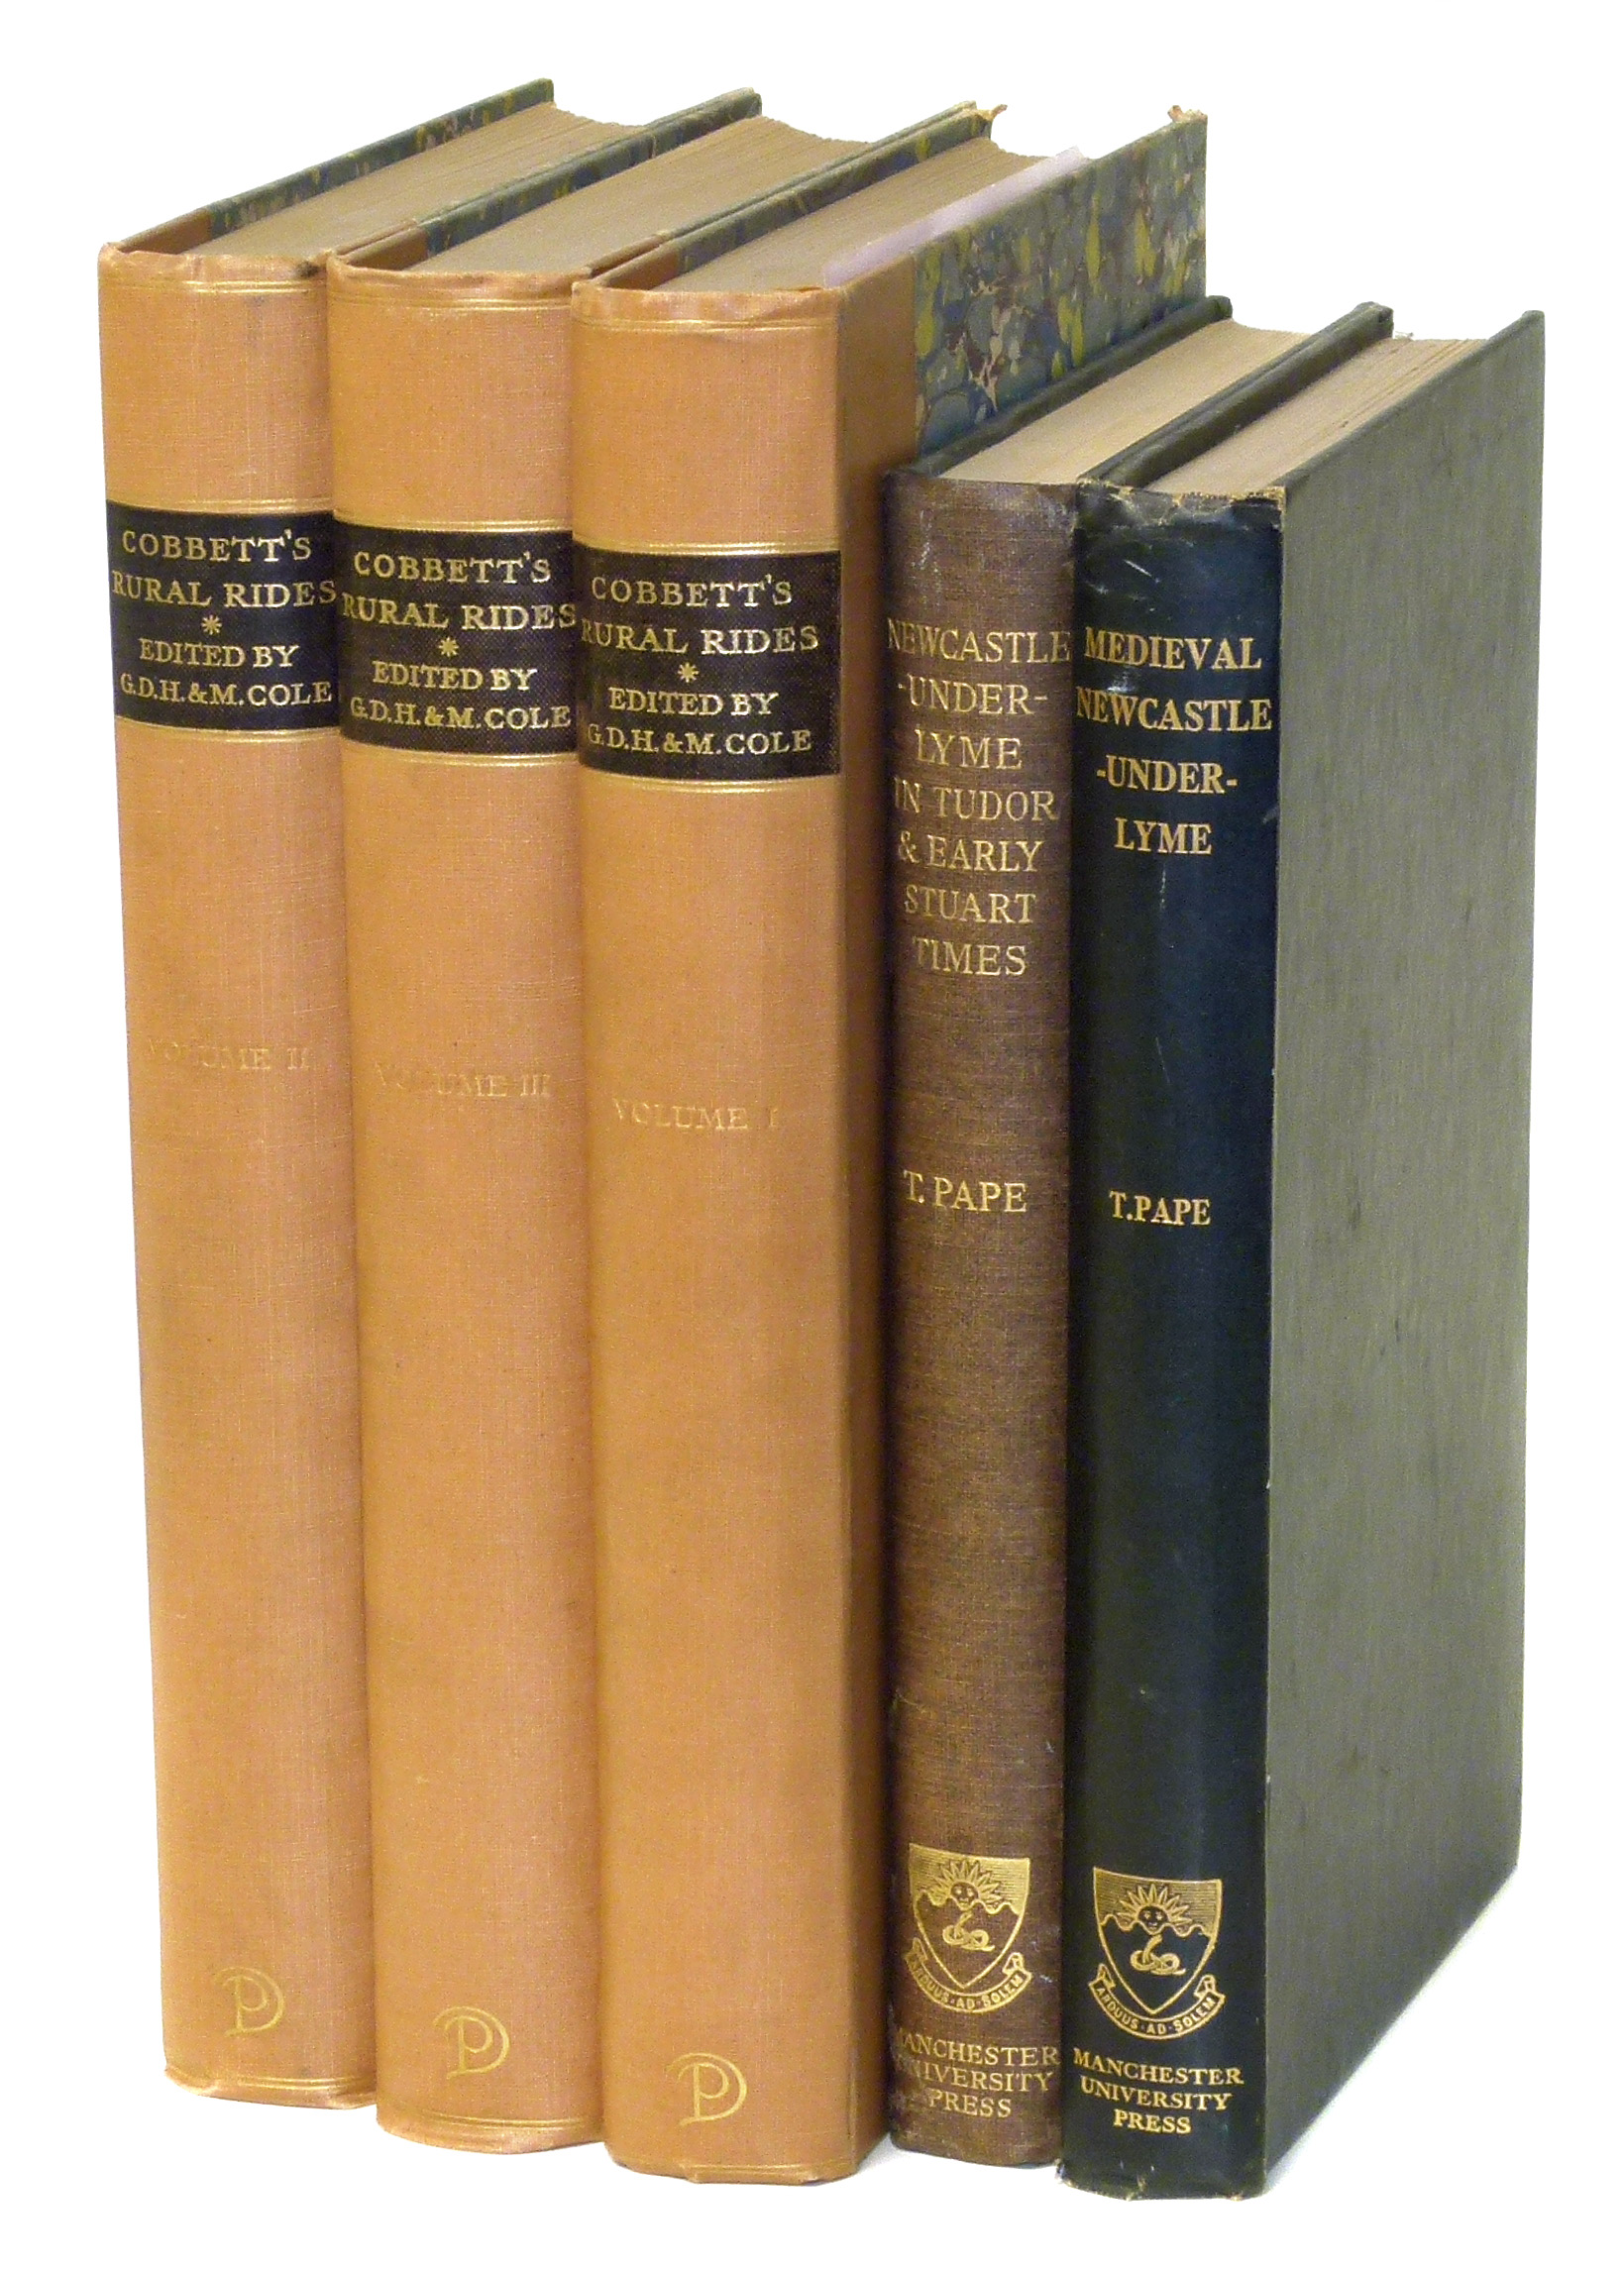 Lot 25 - Cobbett, W., Cobbett's Rural Rides (ed Cole), three volumes, 1930 marbled boards and Pape, T. We are